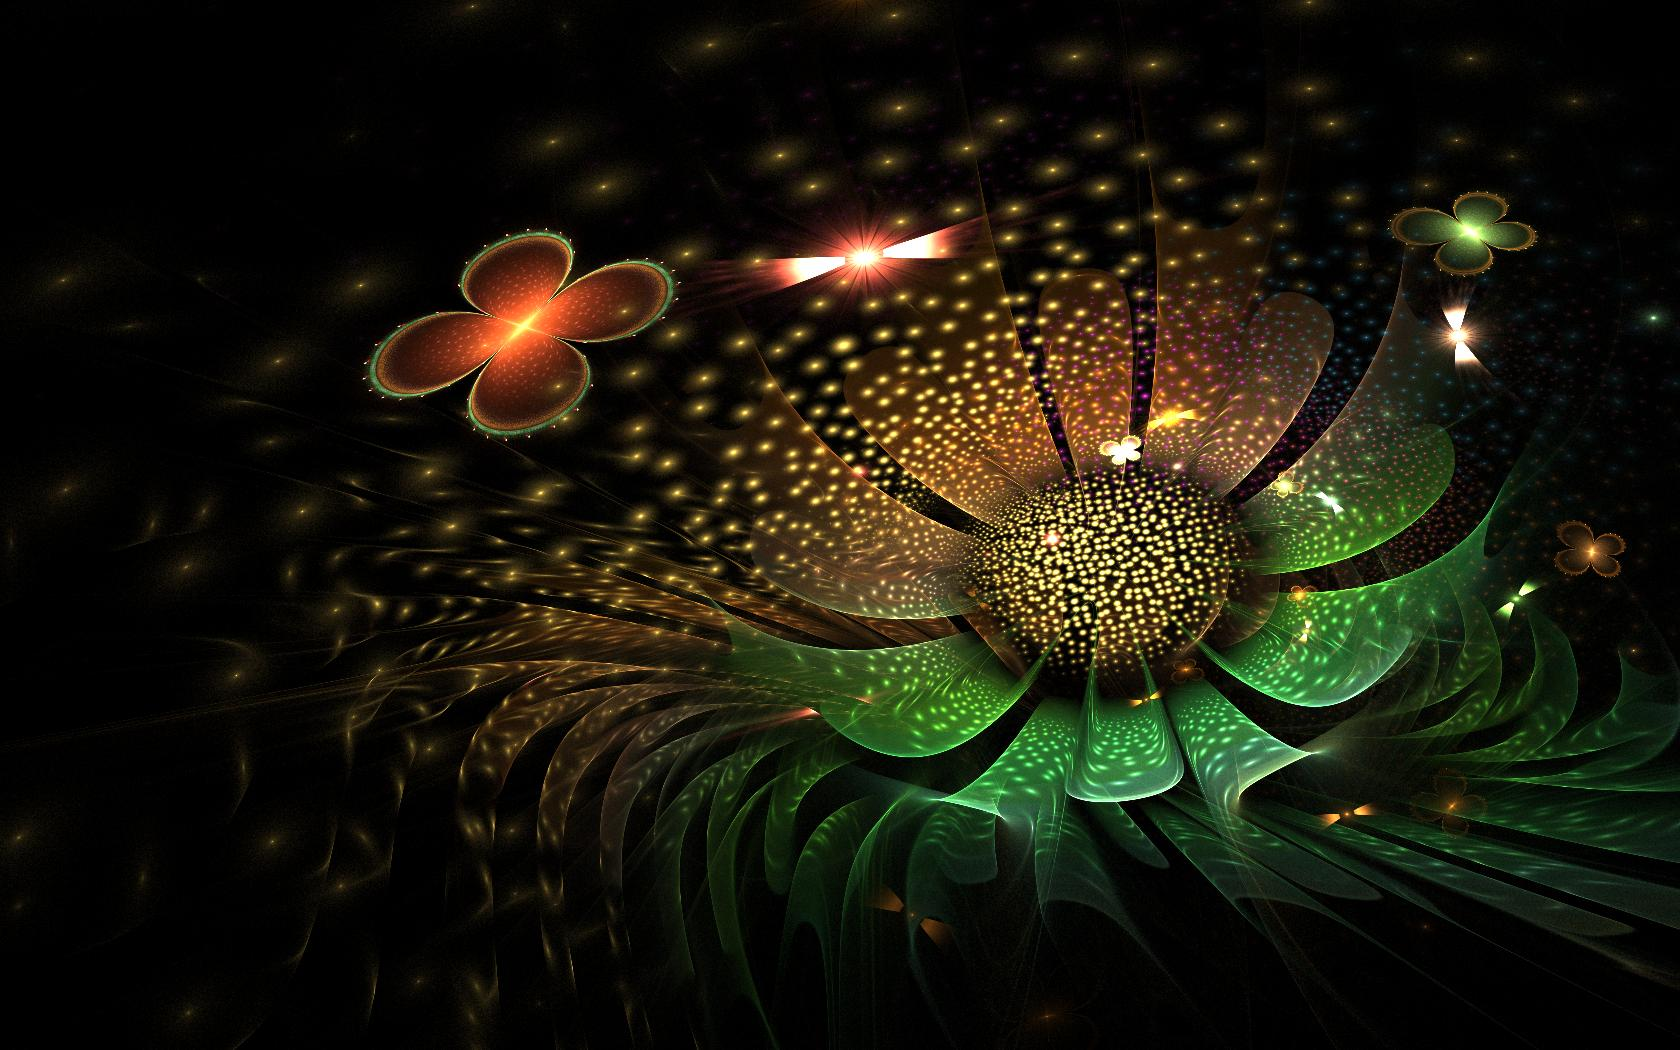 9-flower-digital-art-by-fractist